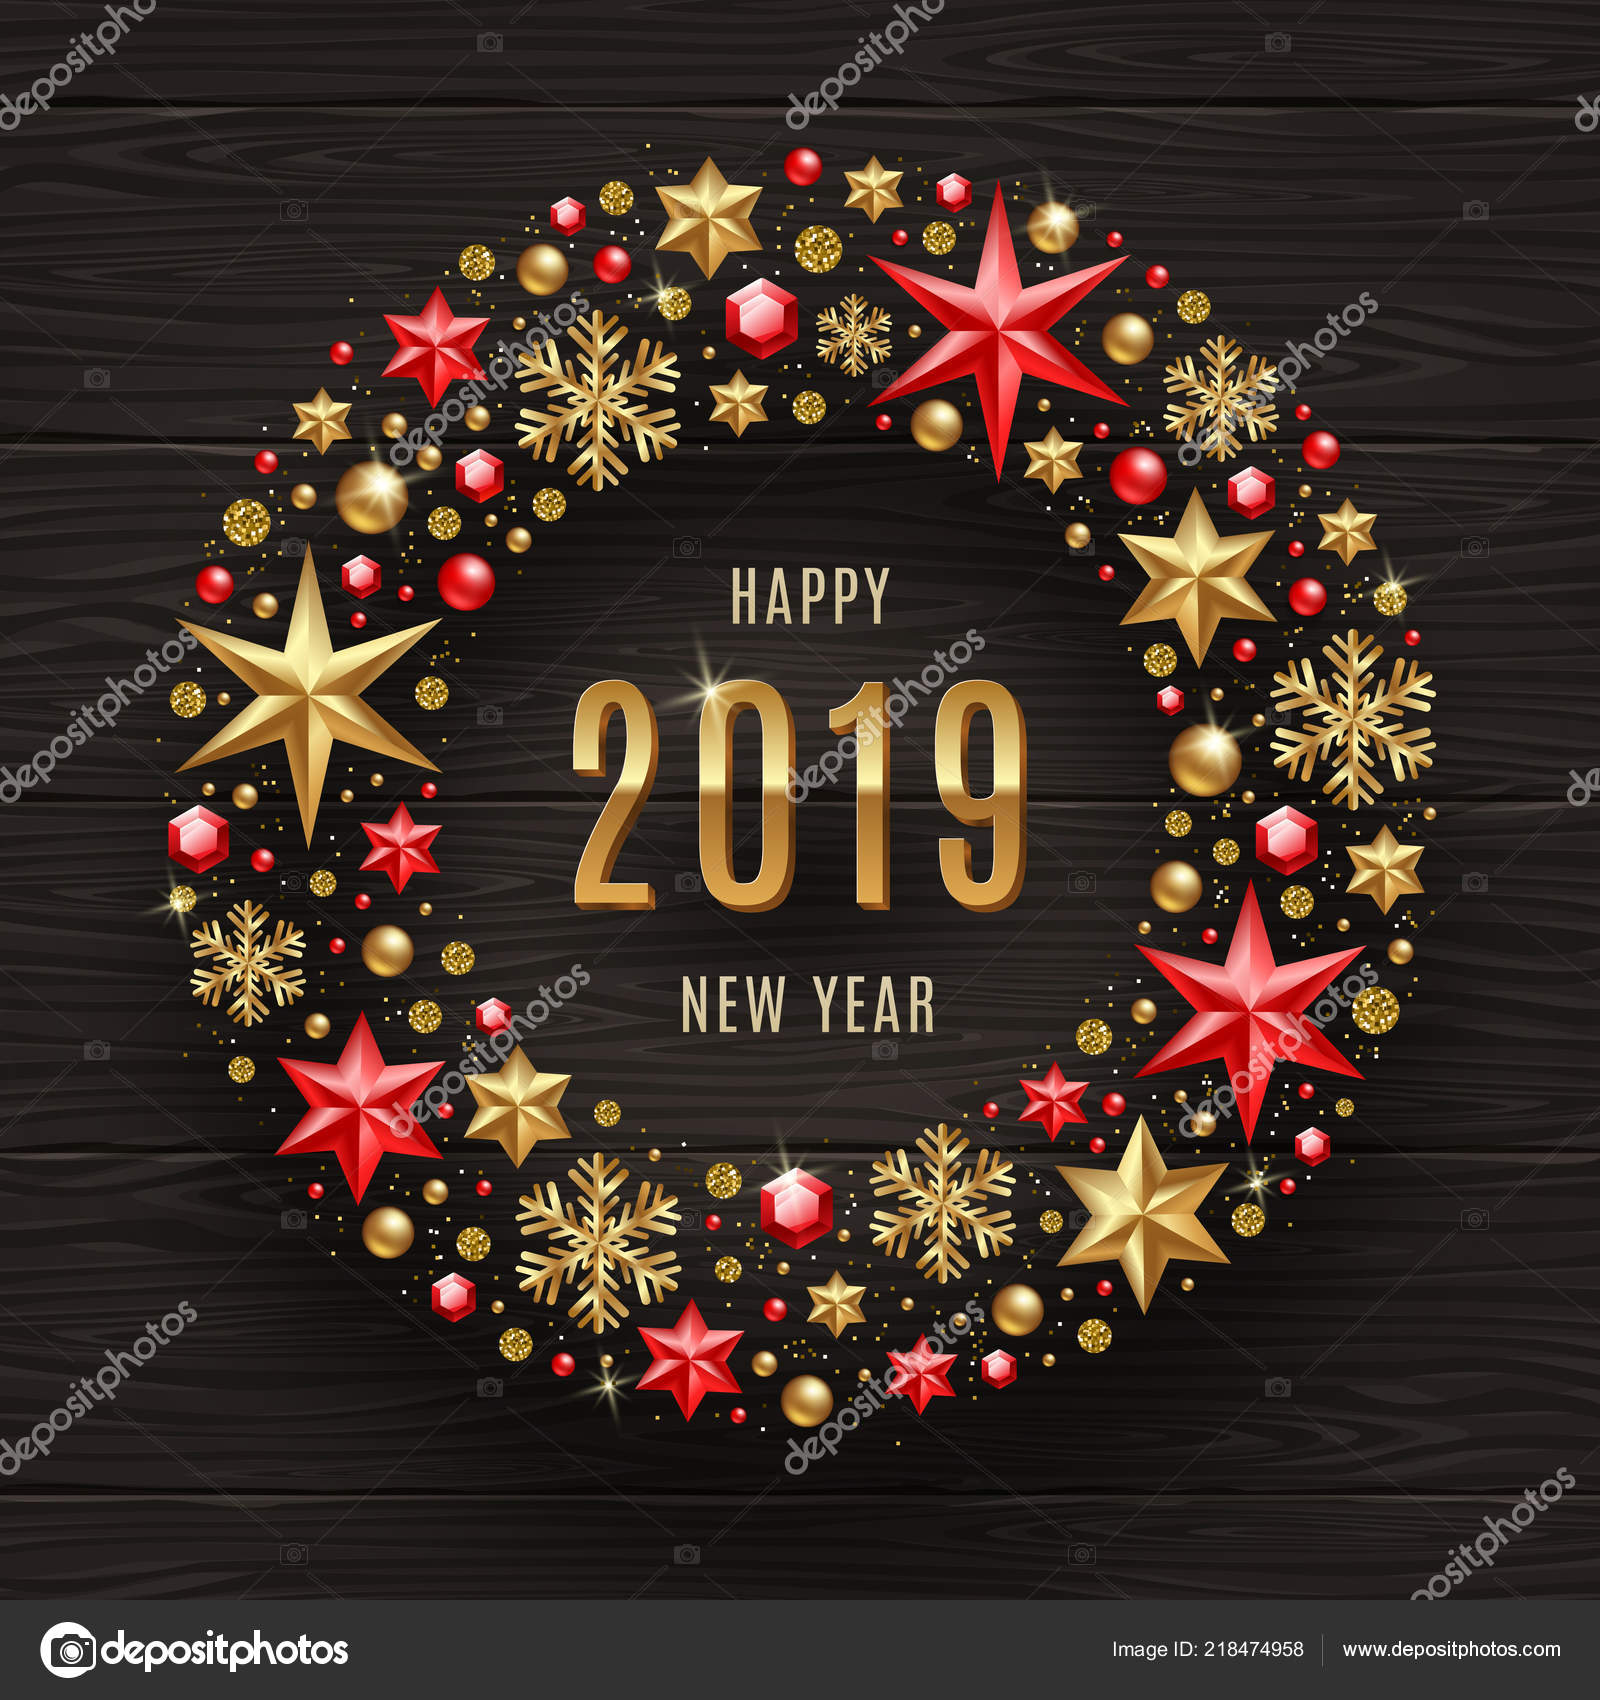 2019 New Year Greeting Illustration New Year Greeting Frame Which